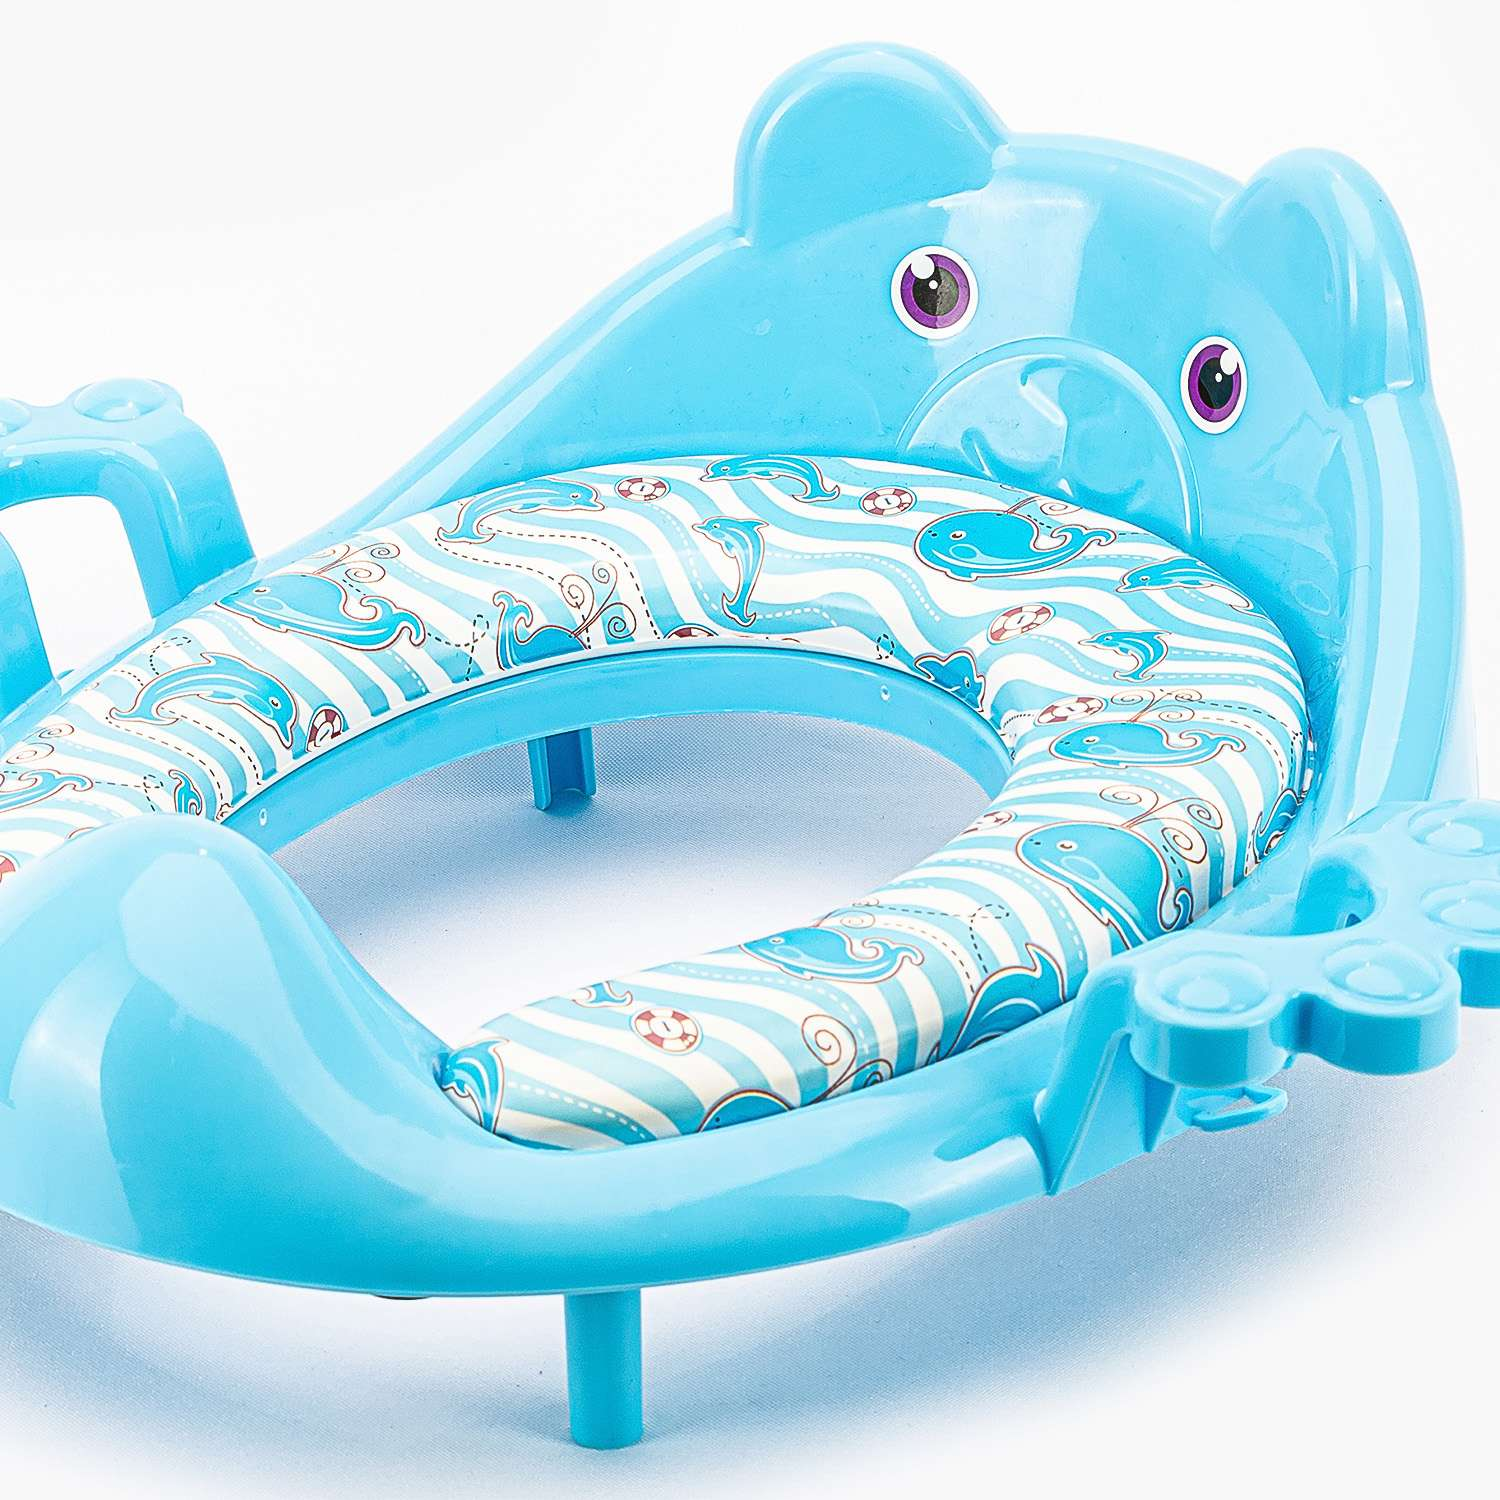 Comfort Potty Seat Baby Potty Ring With Cushion 1